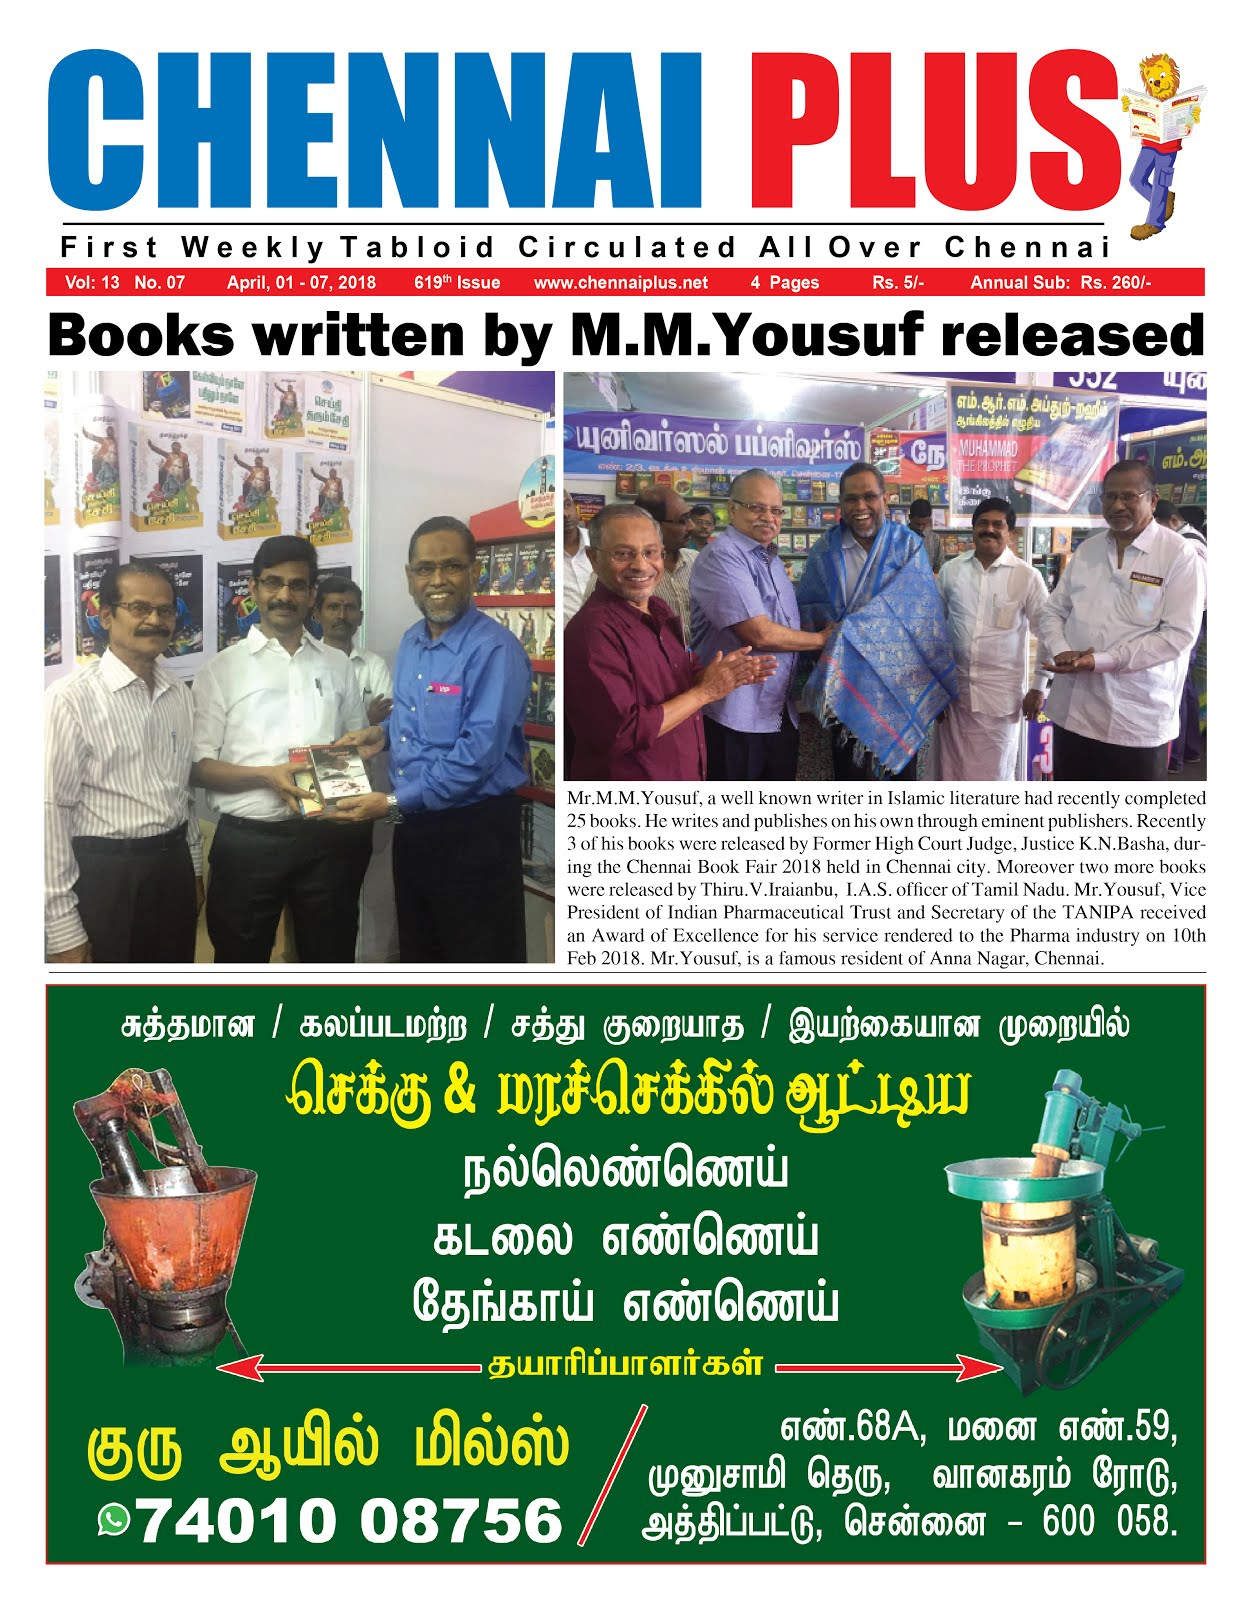 Chennai Plus_01.04.2018_Issue